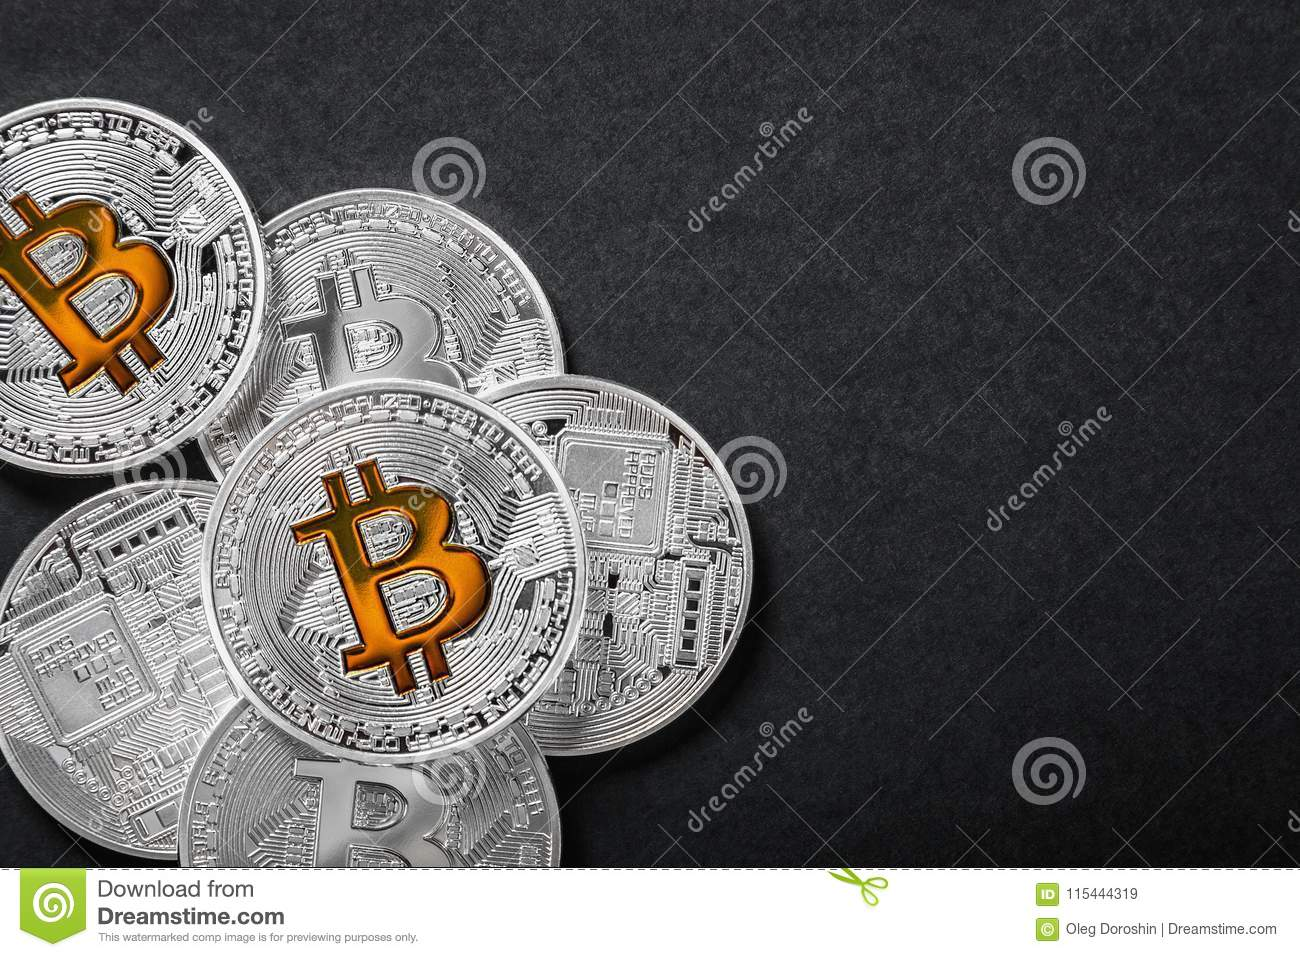 Most promising crypto currency stocks bettingexpert soccer fans